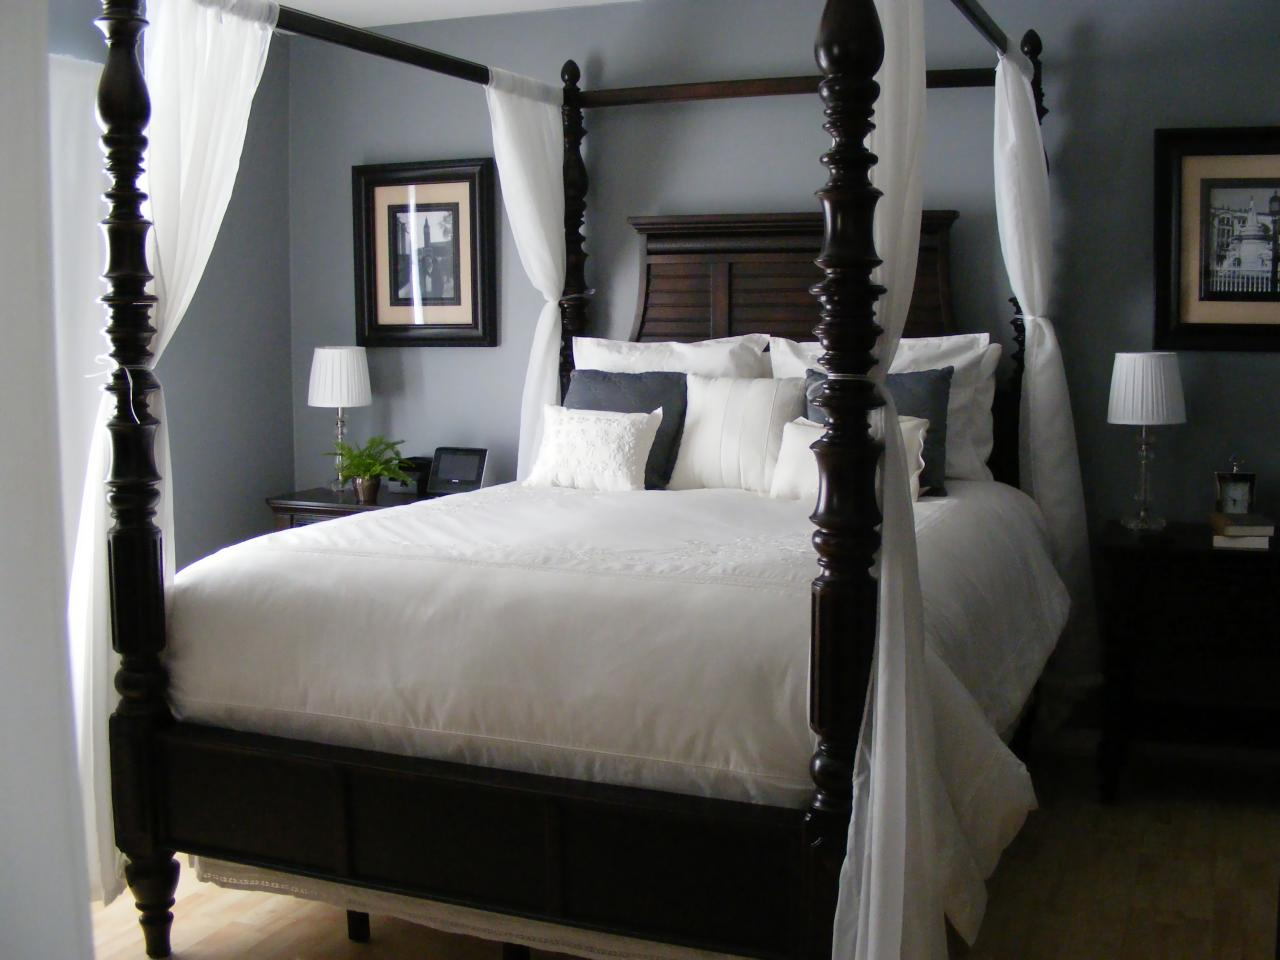 Stylish sexy bedrooms bedrooms bedroom decorating for Bedroom decorating ideas pictures